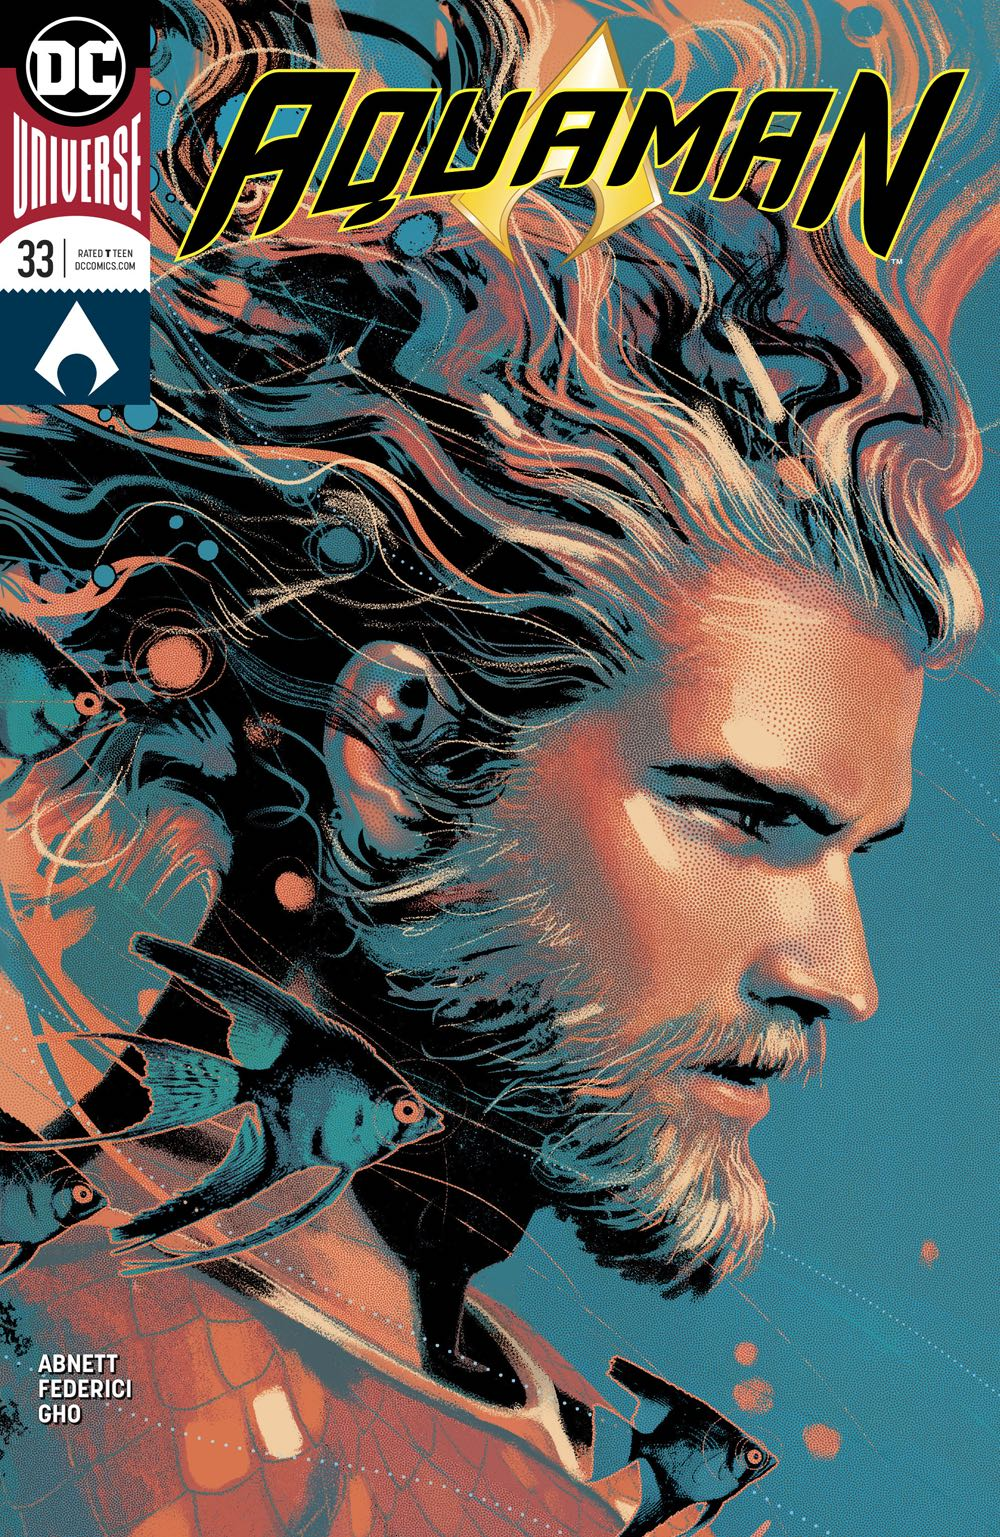 Episode 24 Variant of the Week! - (DC) Aquaman #33 variantCover by Joshua MiddletonWritten by Dan AbnettIllustrated by Ricardo FedericiDid the Content Match the Drapes? - Yes! (Fantastic)